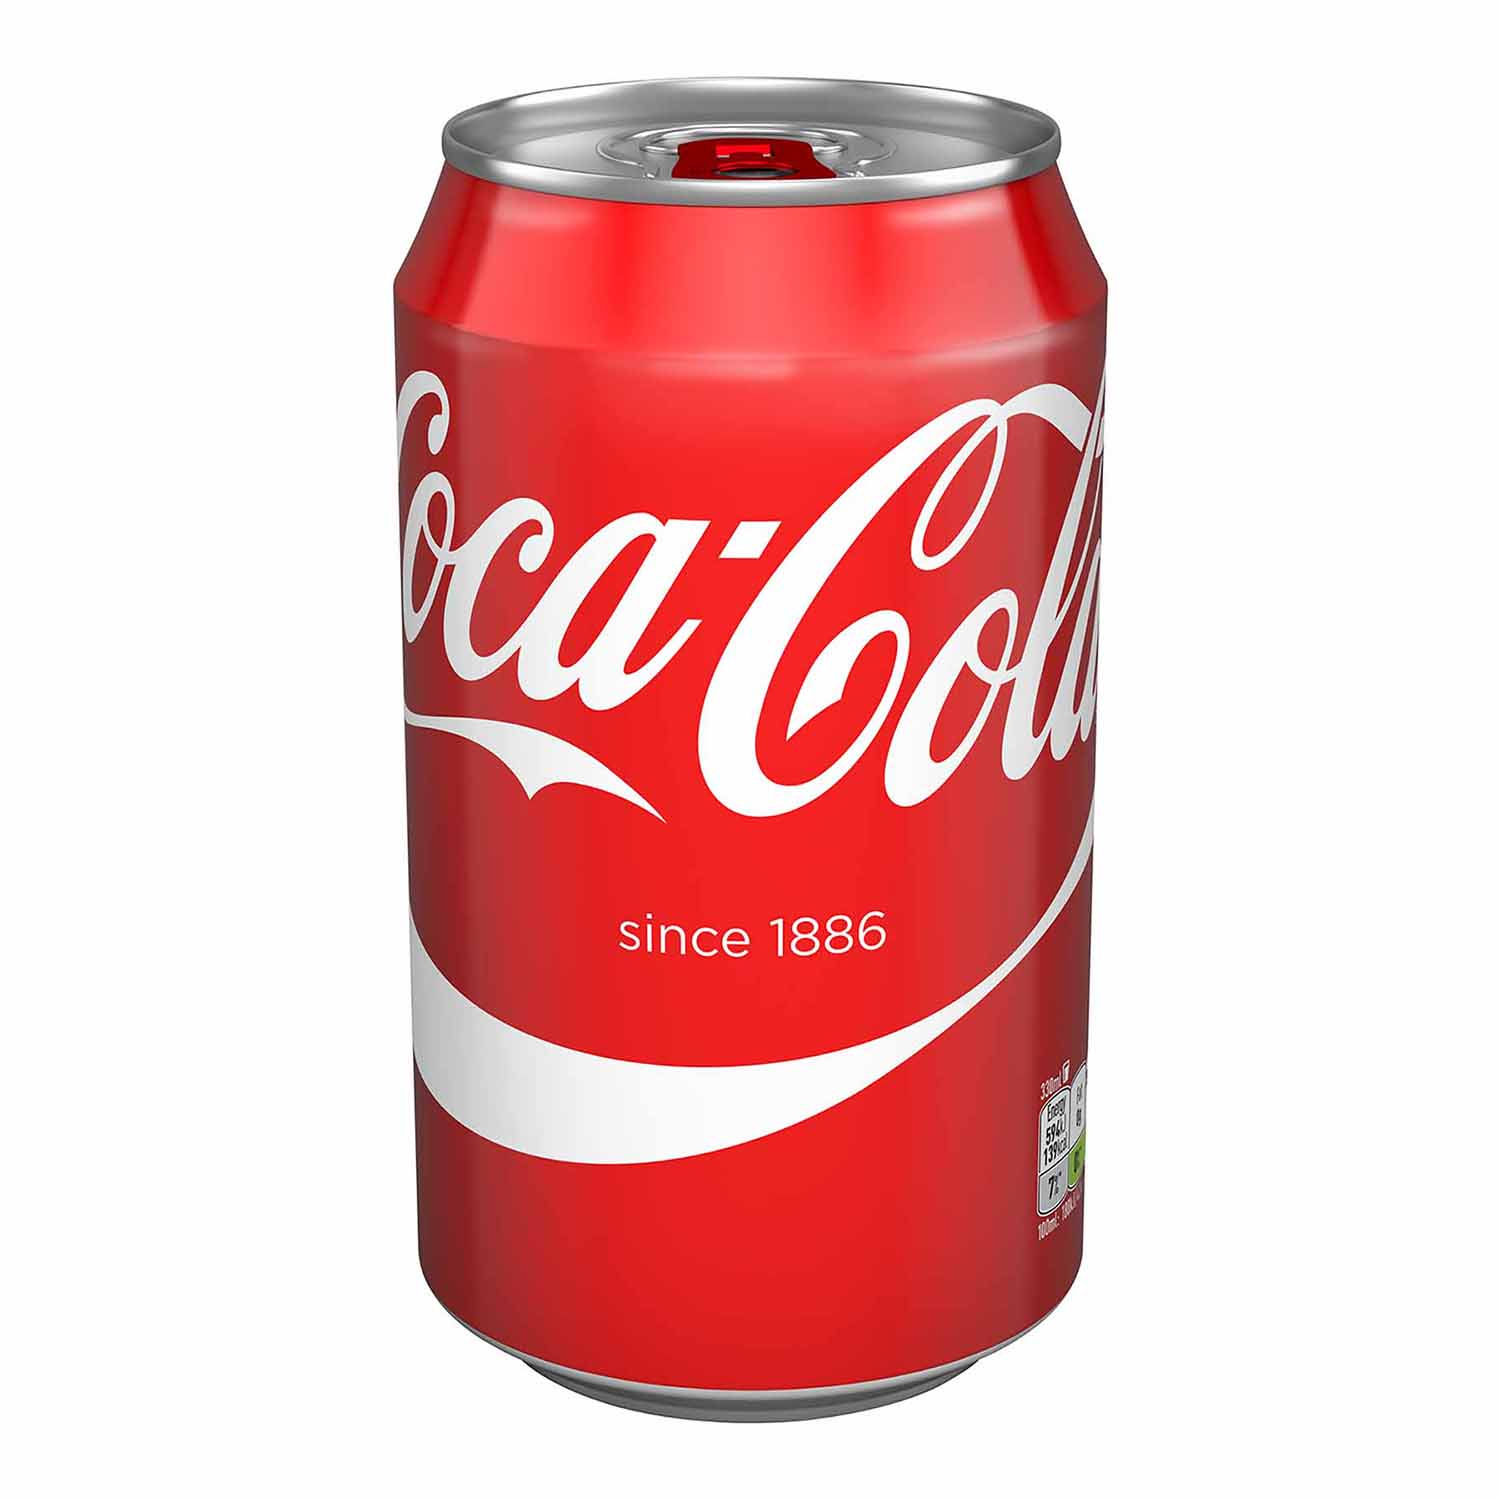 Coca Cola Coke Soft Drink Can 330ml Ref 0402002 [Pack 24]